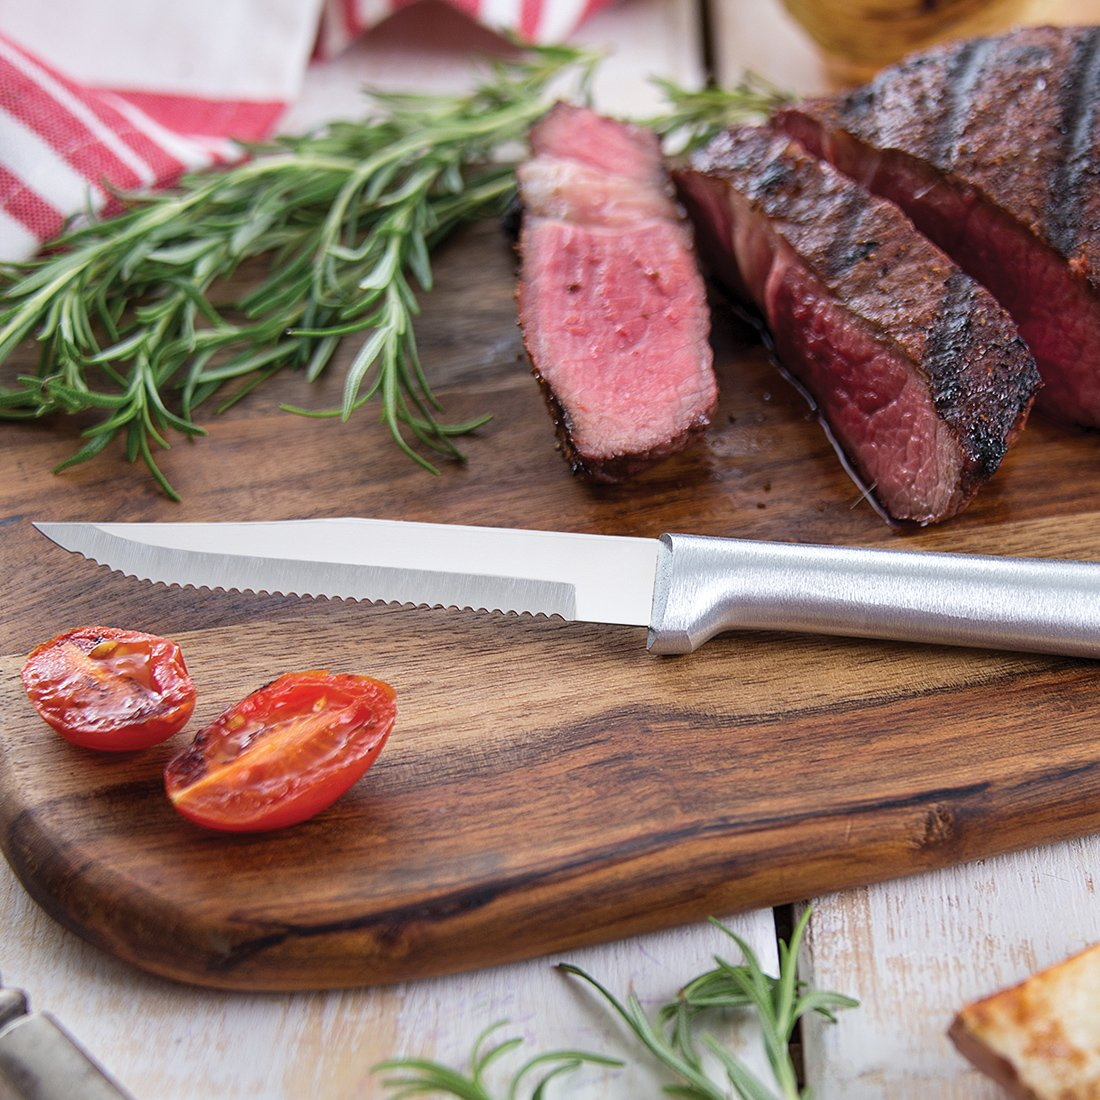 Rada Cutlery Serrated Steak Knife Set - Stainless Steel Knives With Aluminum Handles, Set of 6 by Rada Cutlery (Image #3)